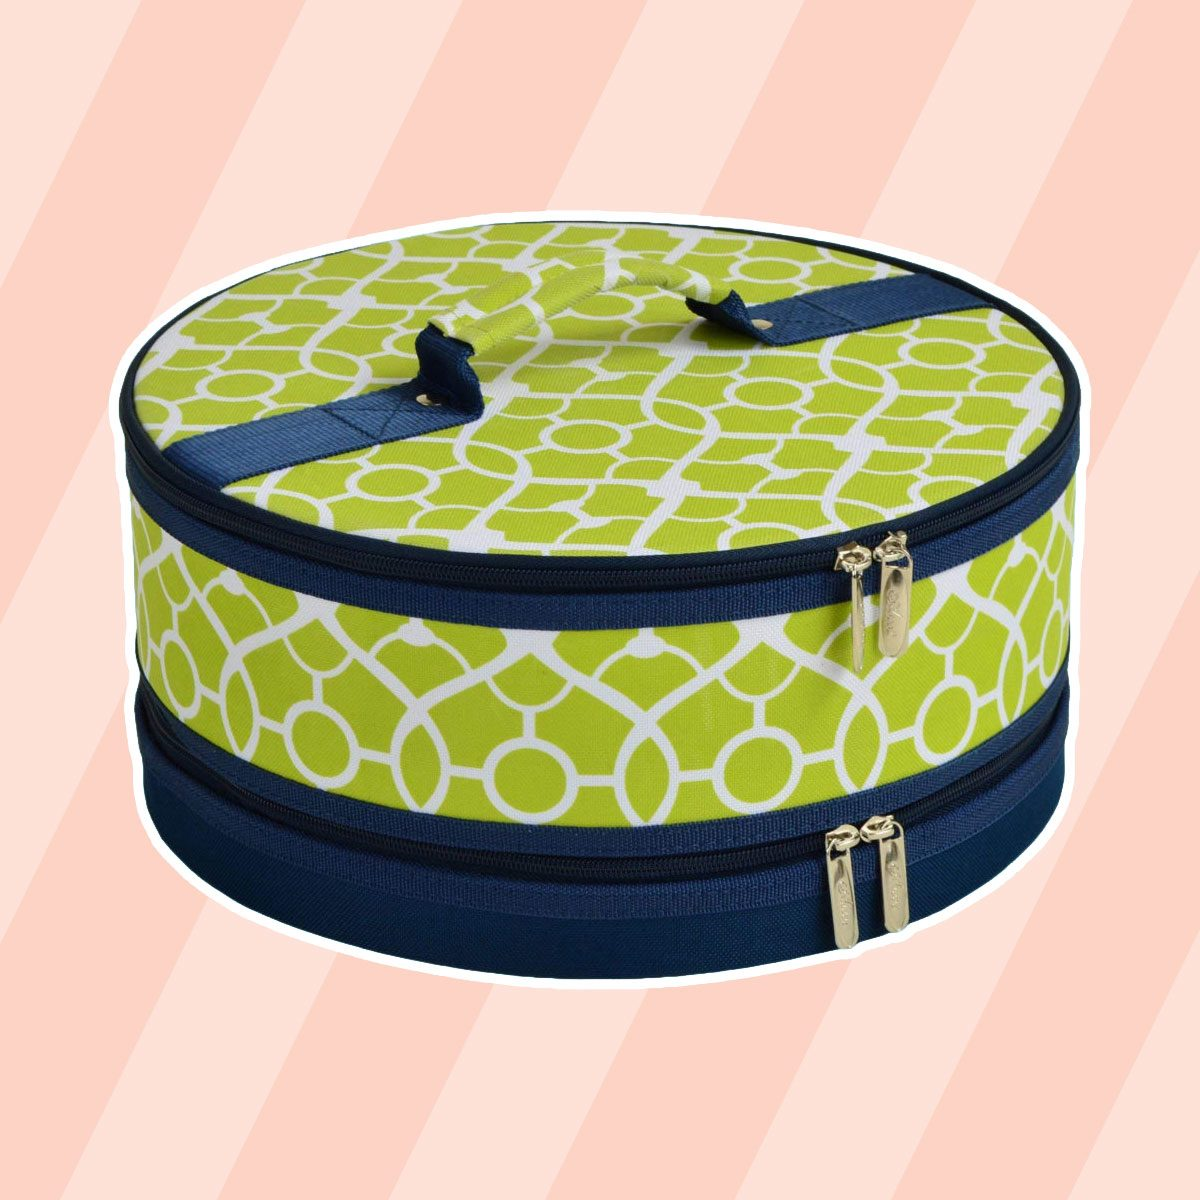 Picnic at Ascot Cake Carrier